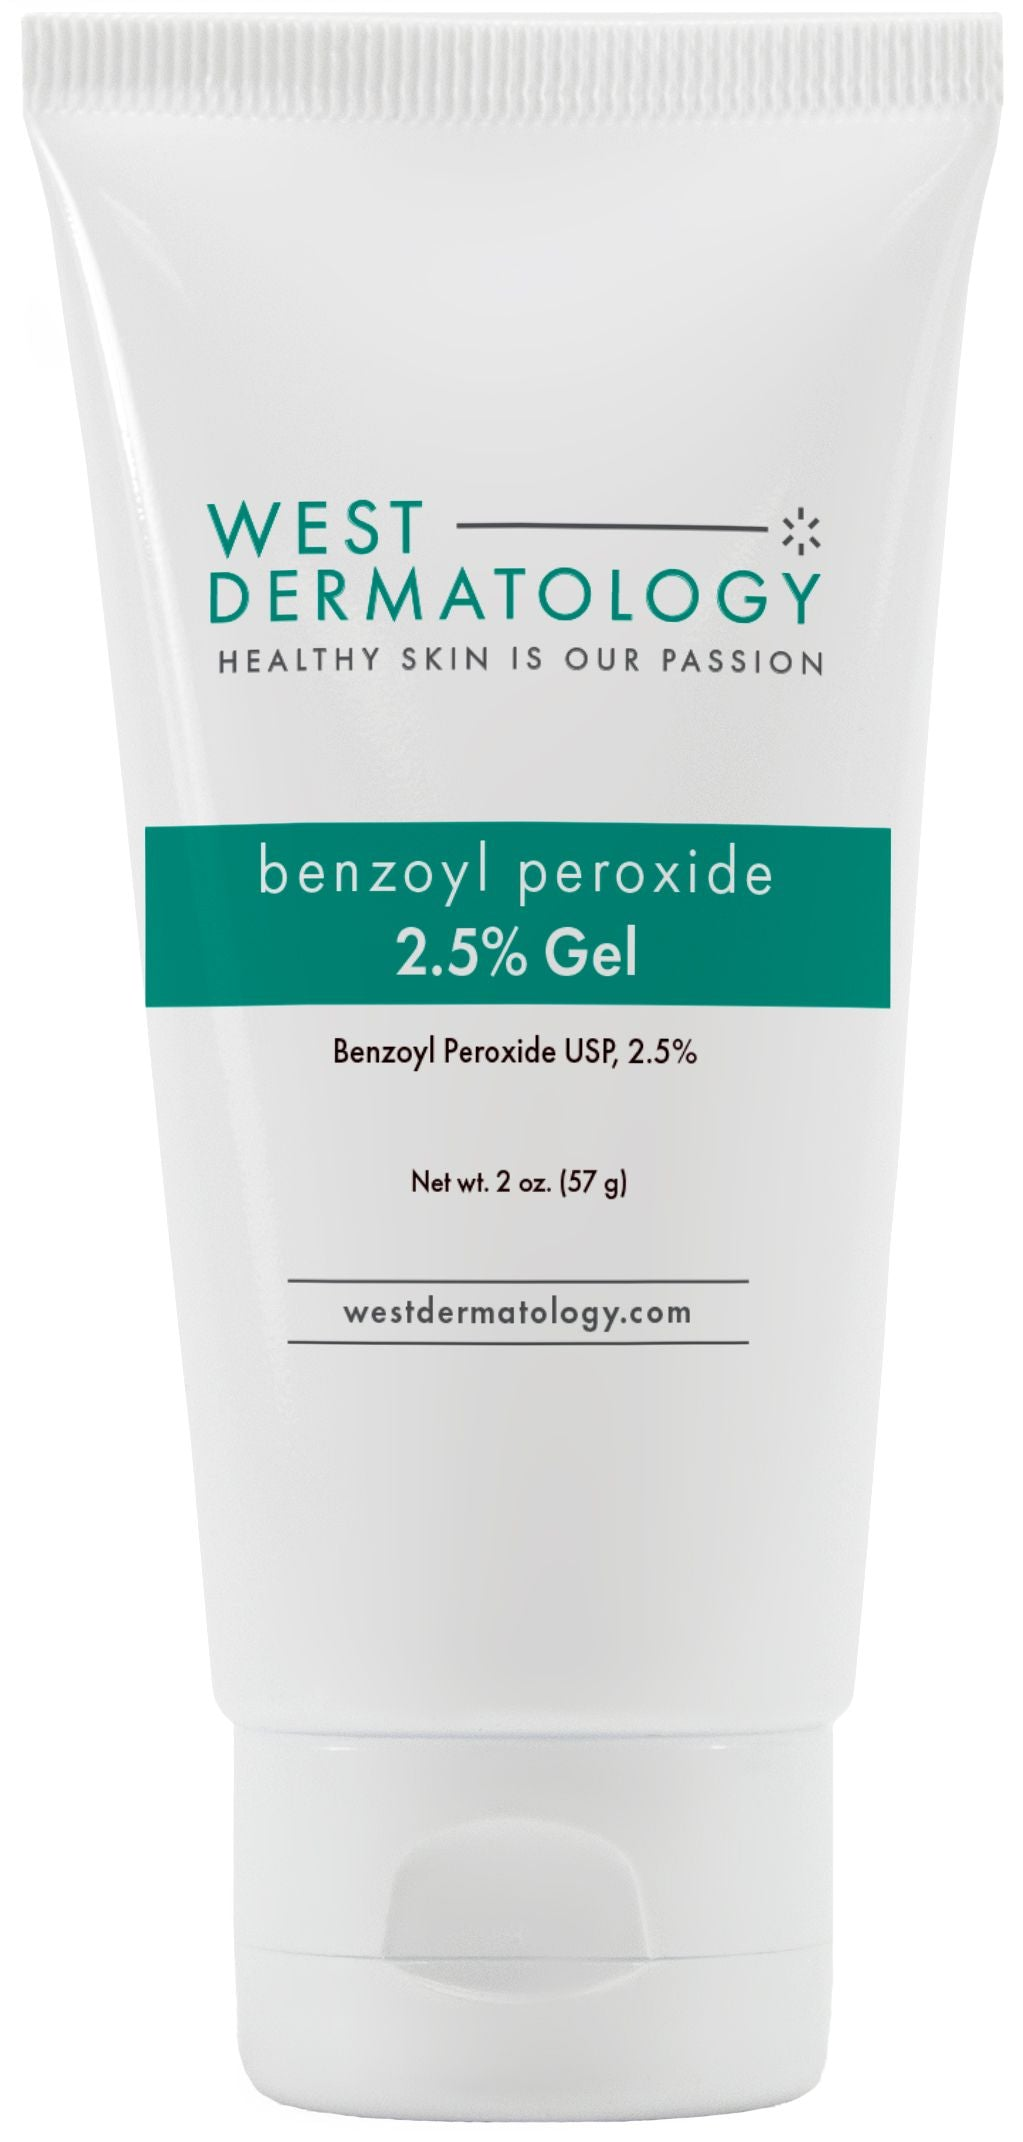 West Dermatology Benzoyl Peroxide 2.5% Gel